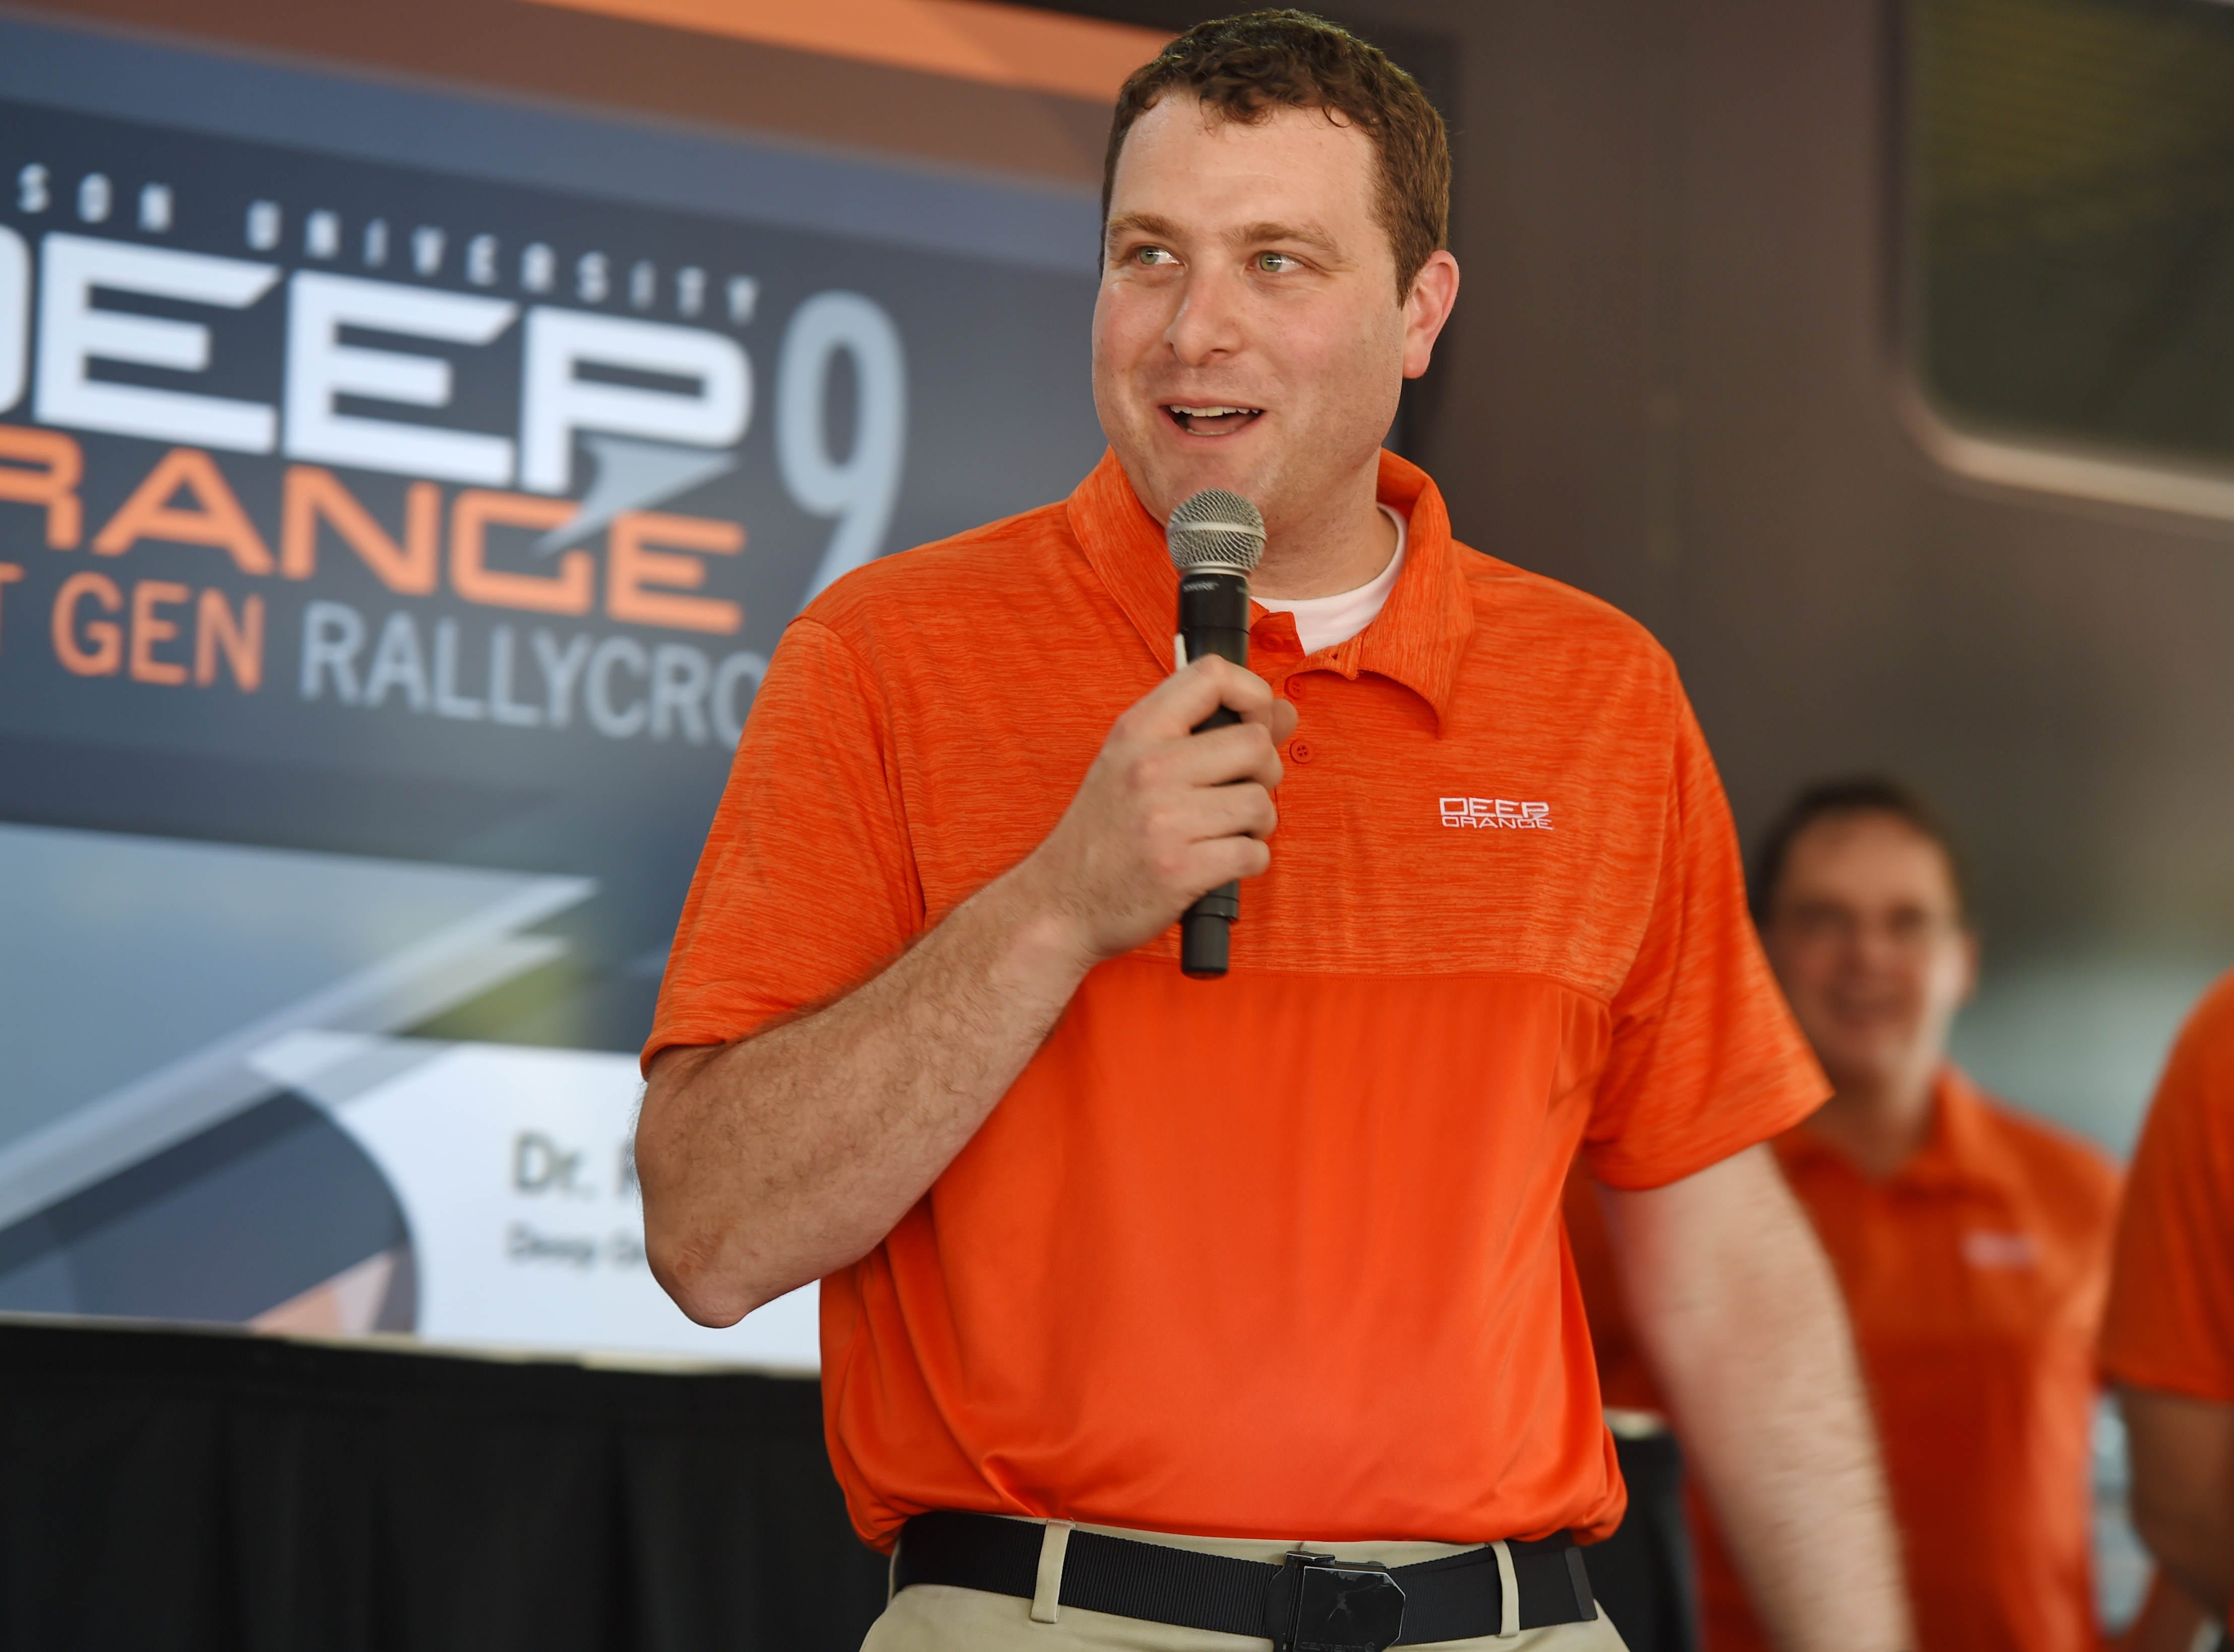 Dr. Rob Pruka, project leader for the Deep Orange 9, speaks to the crowd during the CU-ICAR unveiling of the new Deep Orange 9 rally car Saturday, October 6,  2018.